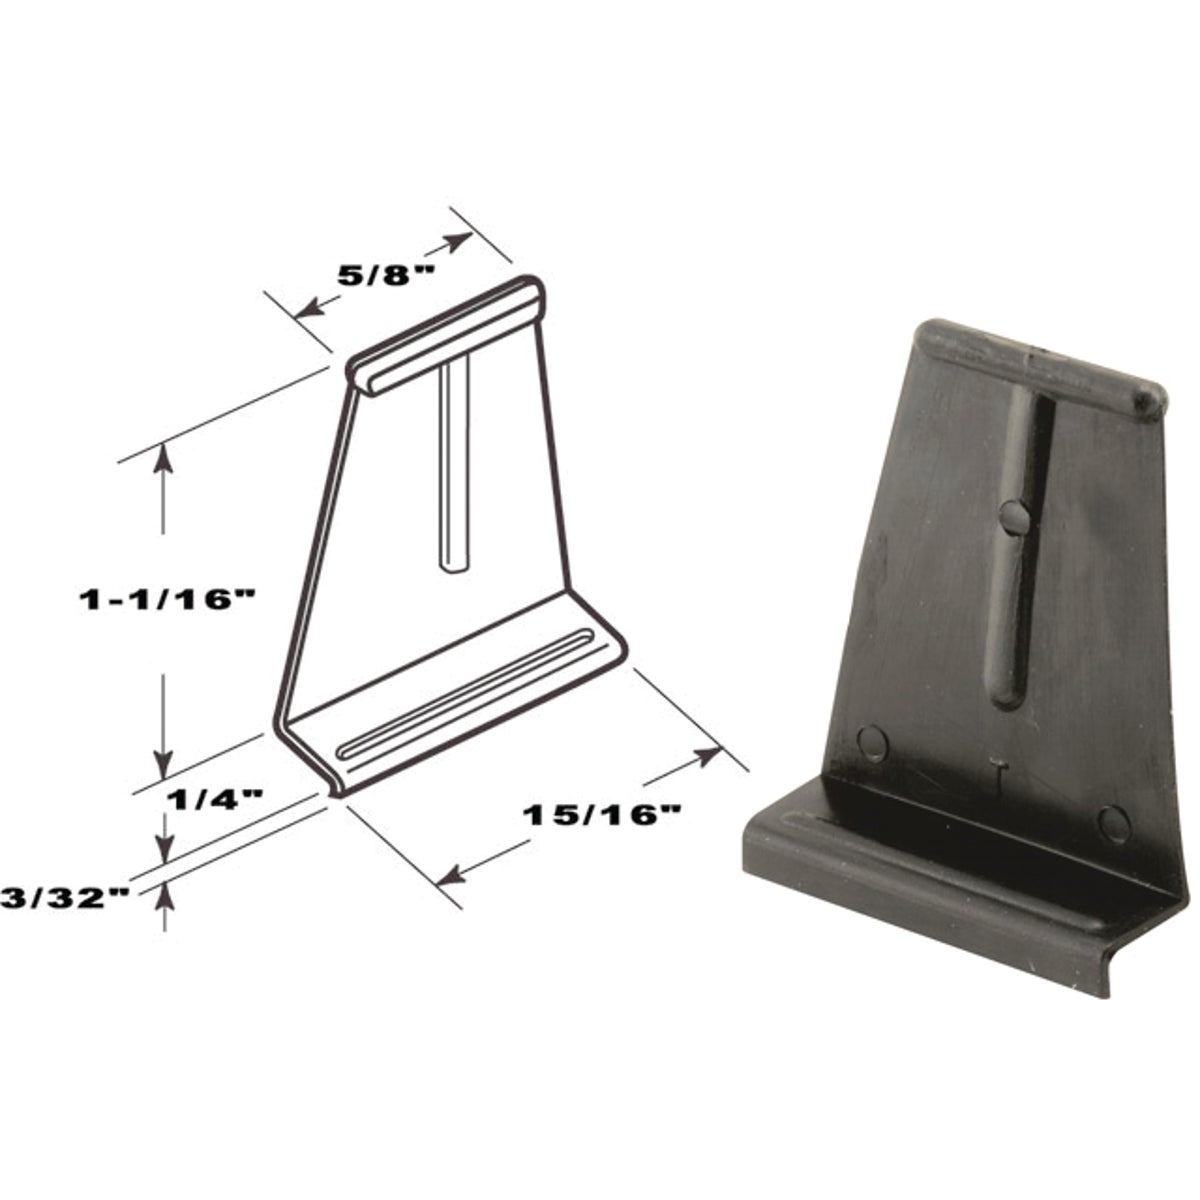 25PK CHANNEL PULL TAB - PL14621 by Prime Line Products